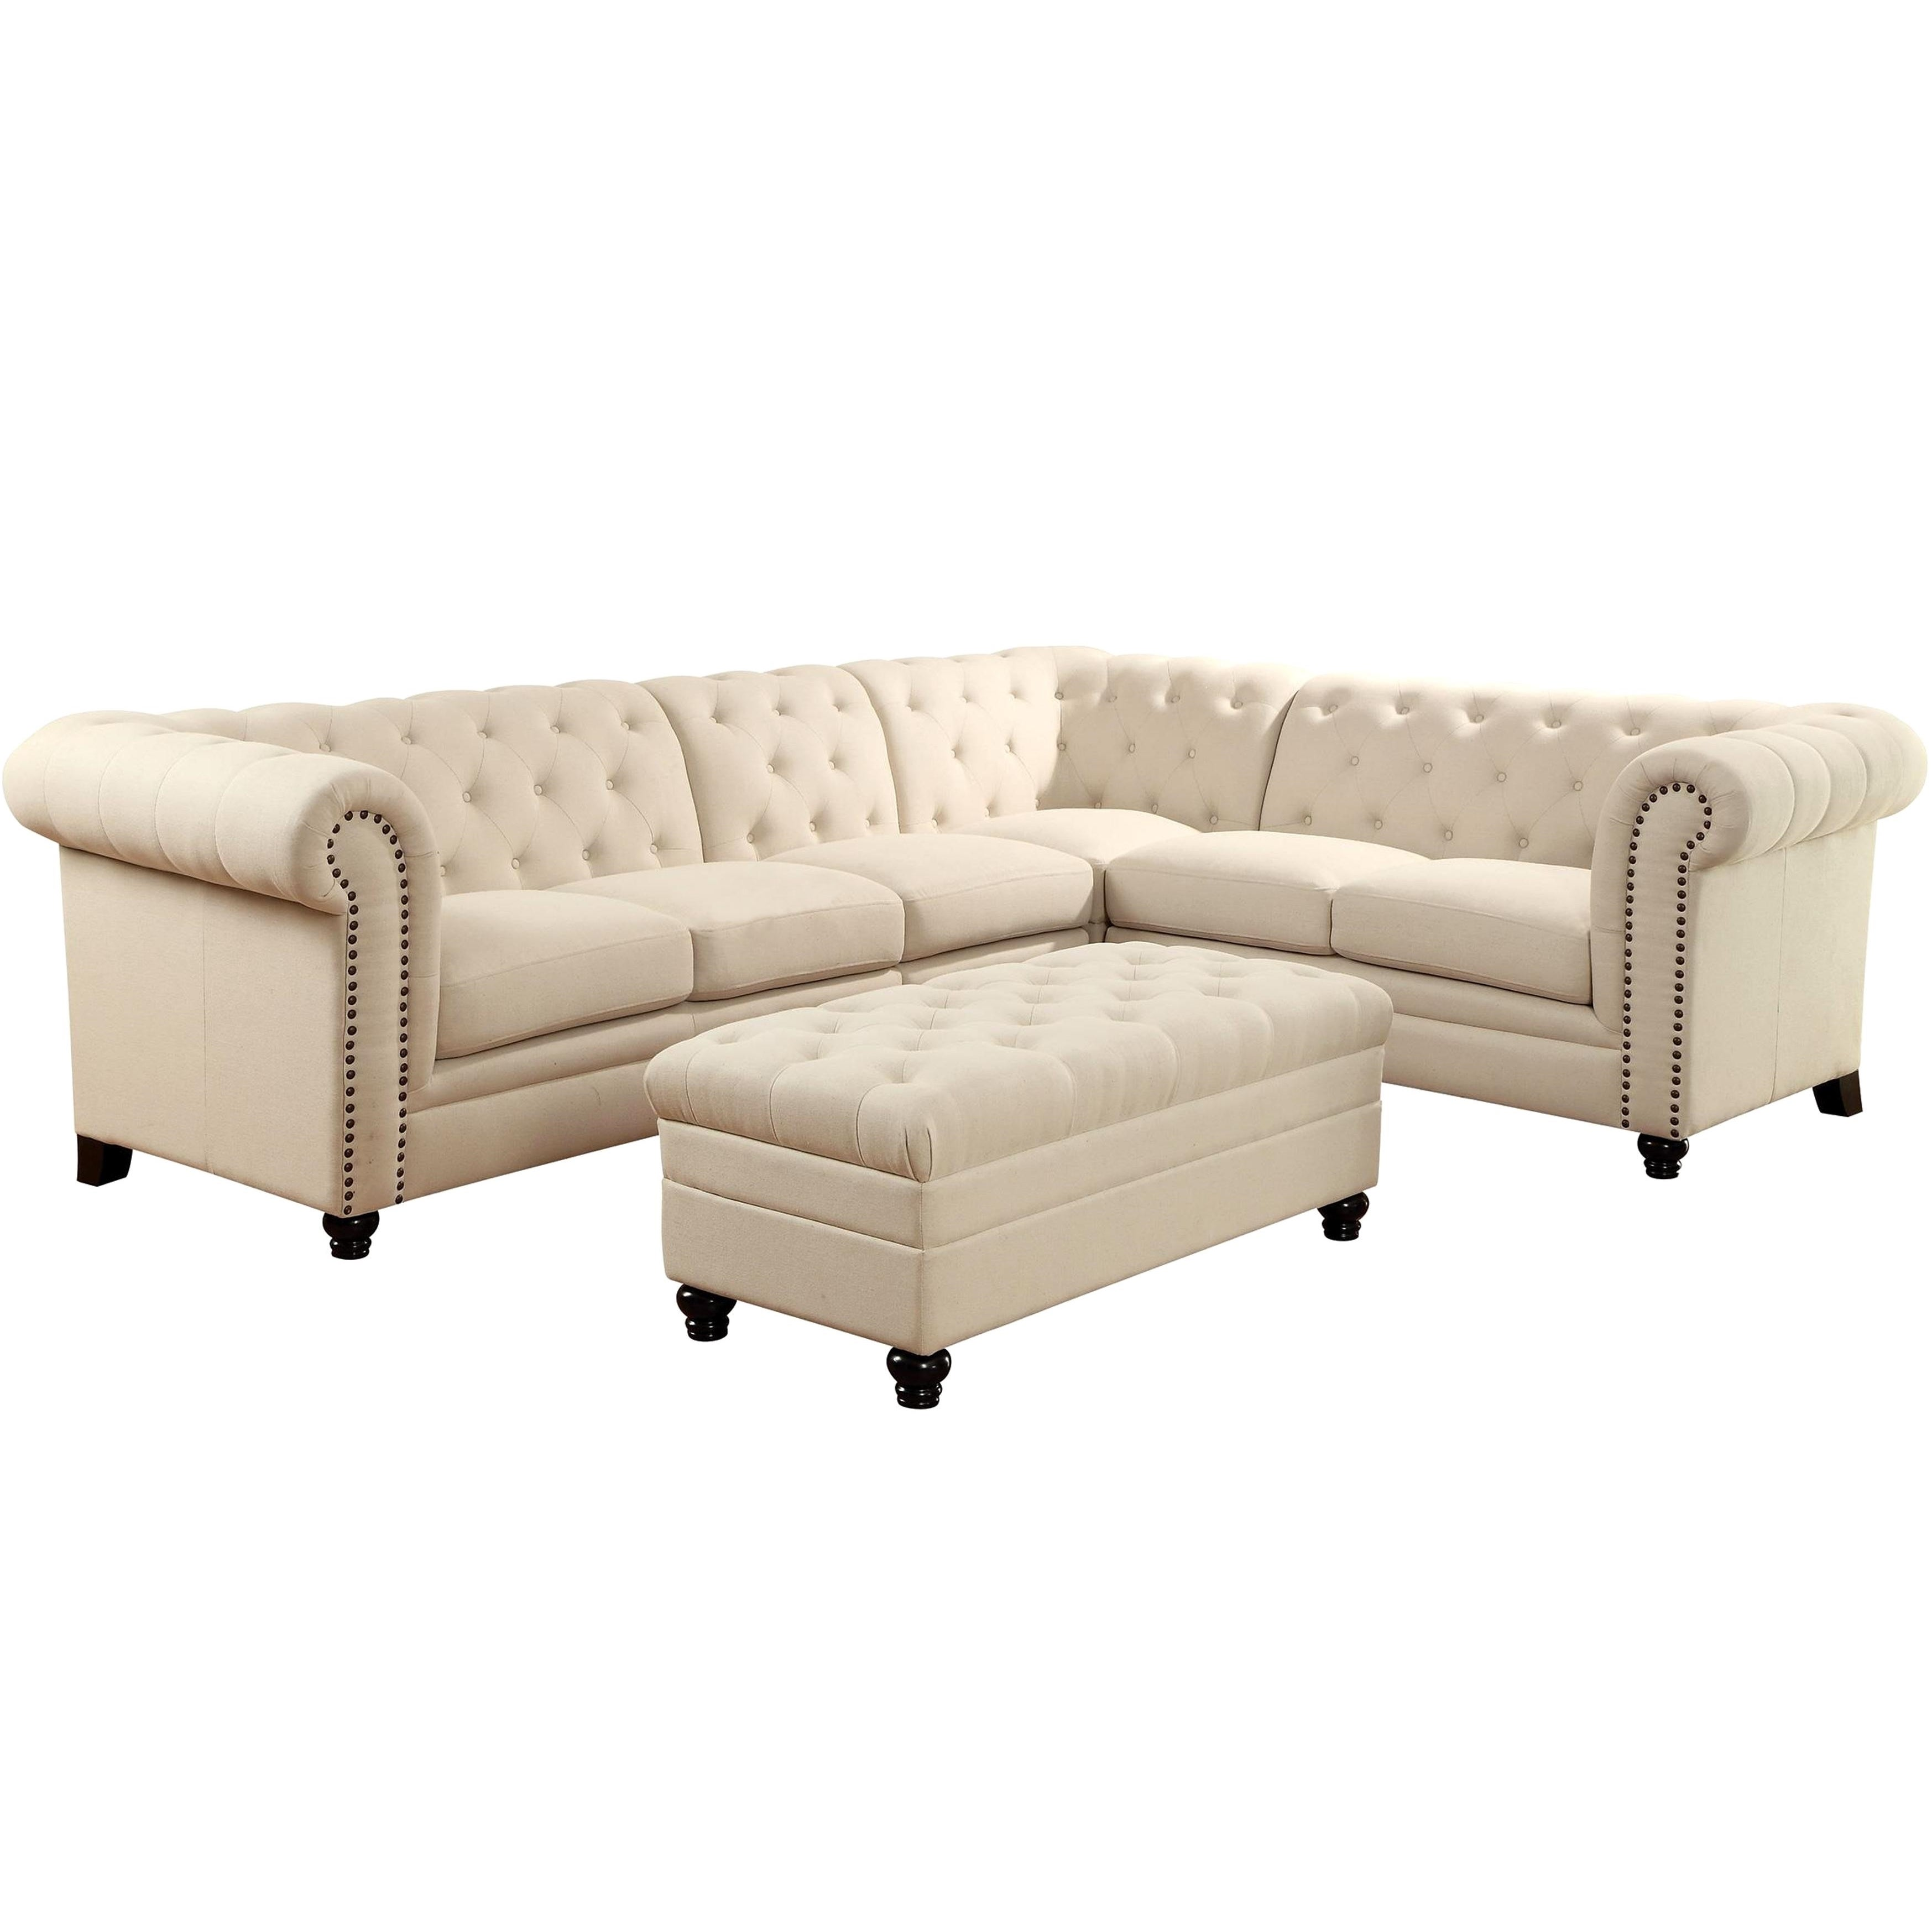 Shop Royal Mid Century Button Tufted Design Living Room Extended Sectional  Sofa With Decorative Nailhead Trim   Free Shipping Today   Overstock.com    ...